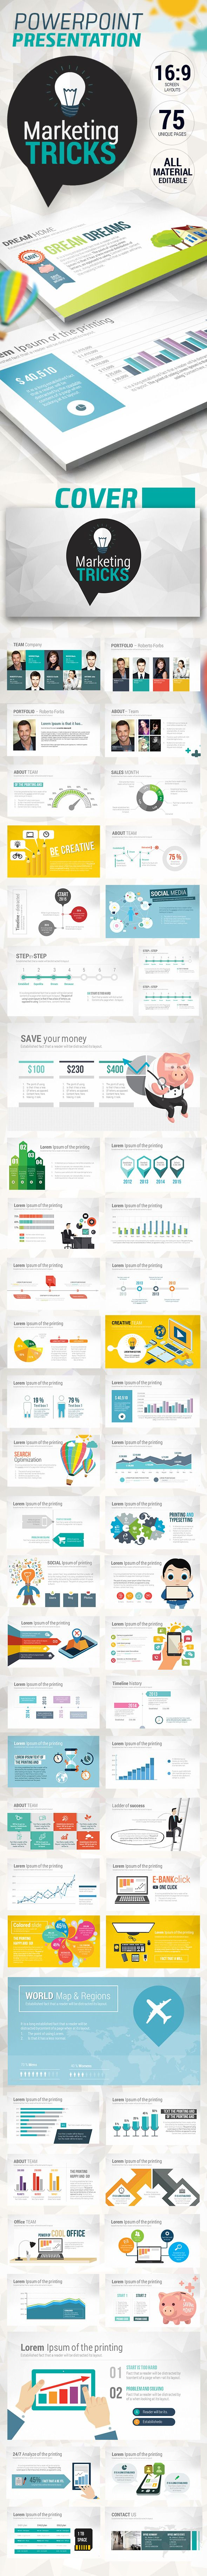 Fresh Marketing Tricks Presentation Template #powerpoint #powerpointtemplate Download: http://graphicriver.net/item/fresh-marketing-tricks-presentation/10440013?ref=ksioks